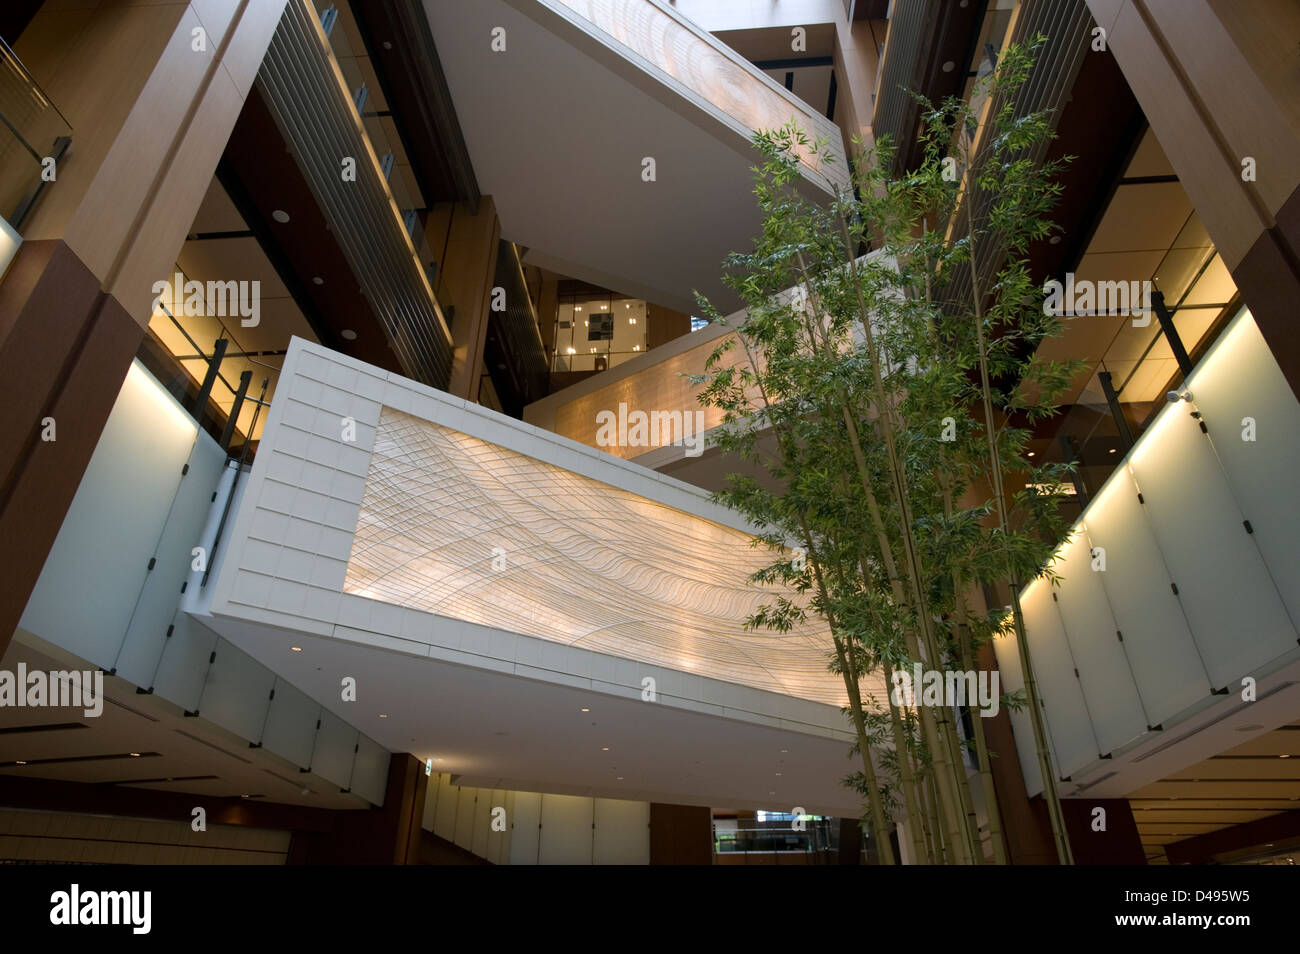 Multi-story shopping mall atrium at new, modern Tokyo Midtown, a mixed-use shopping, hotel and residential complex - Stock Image